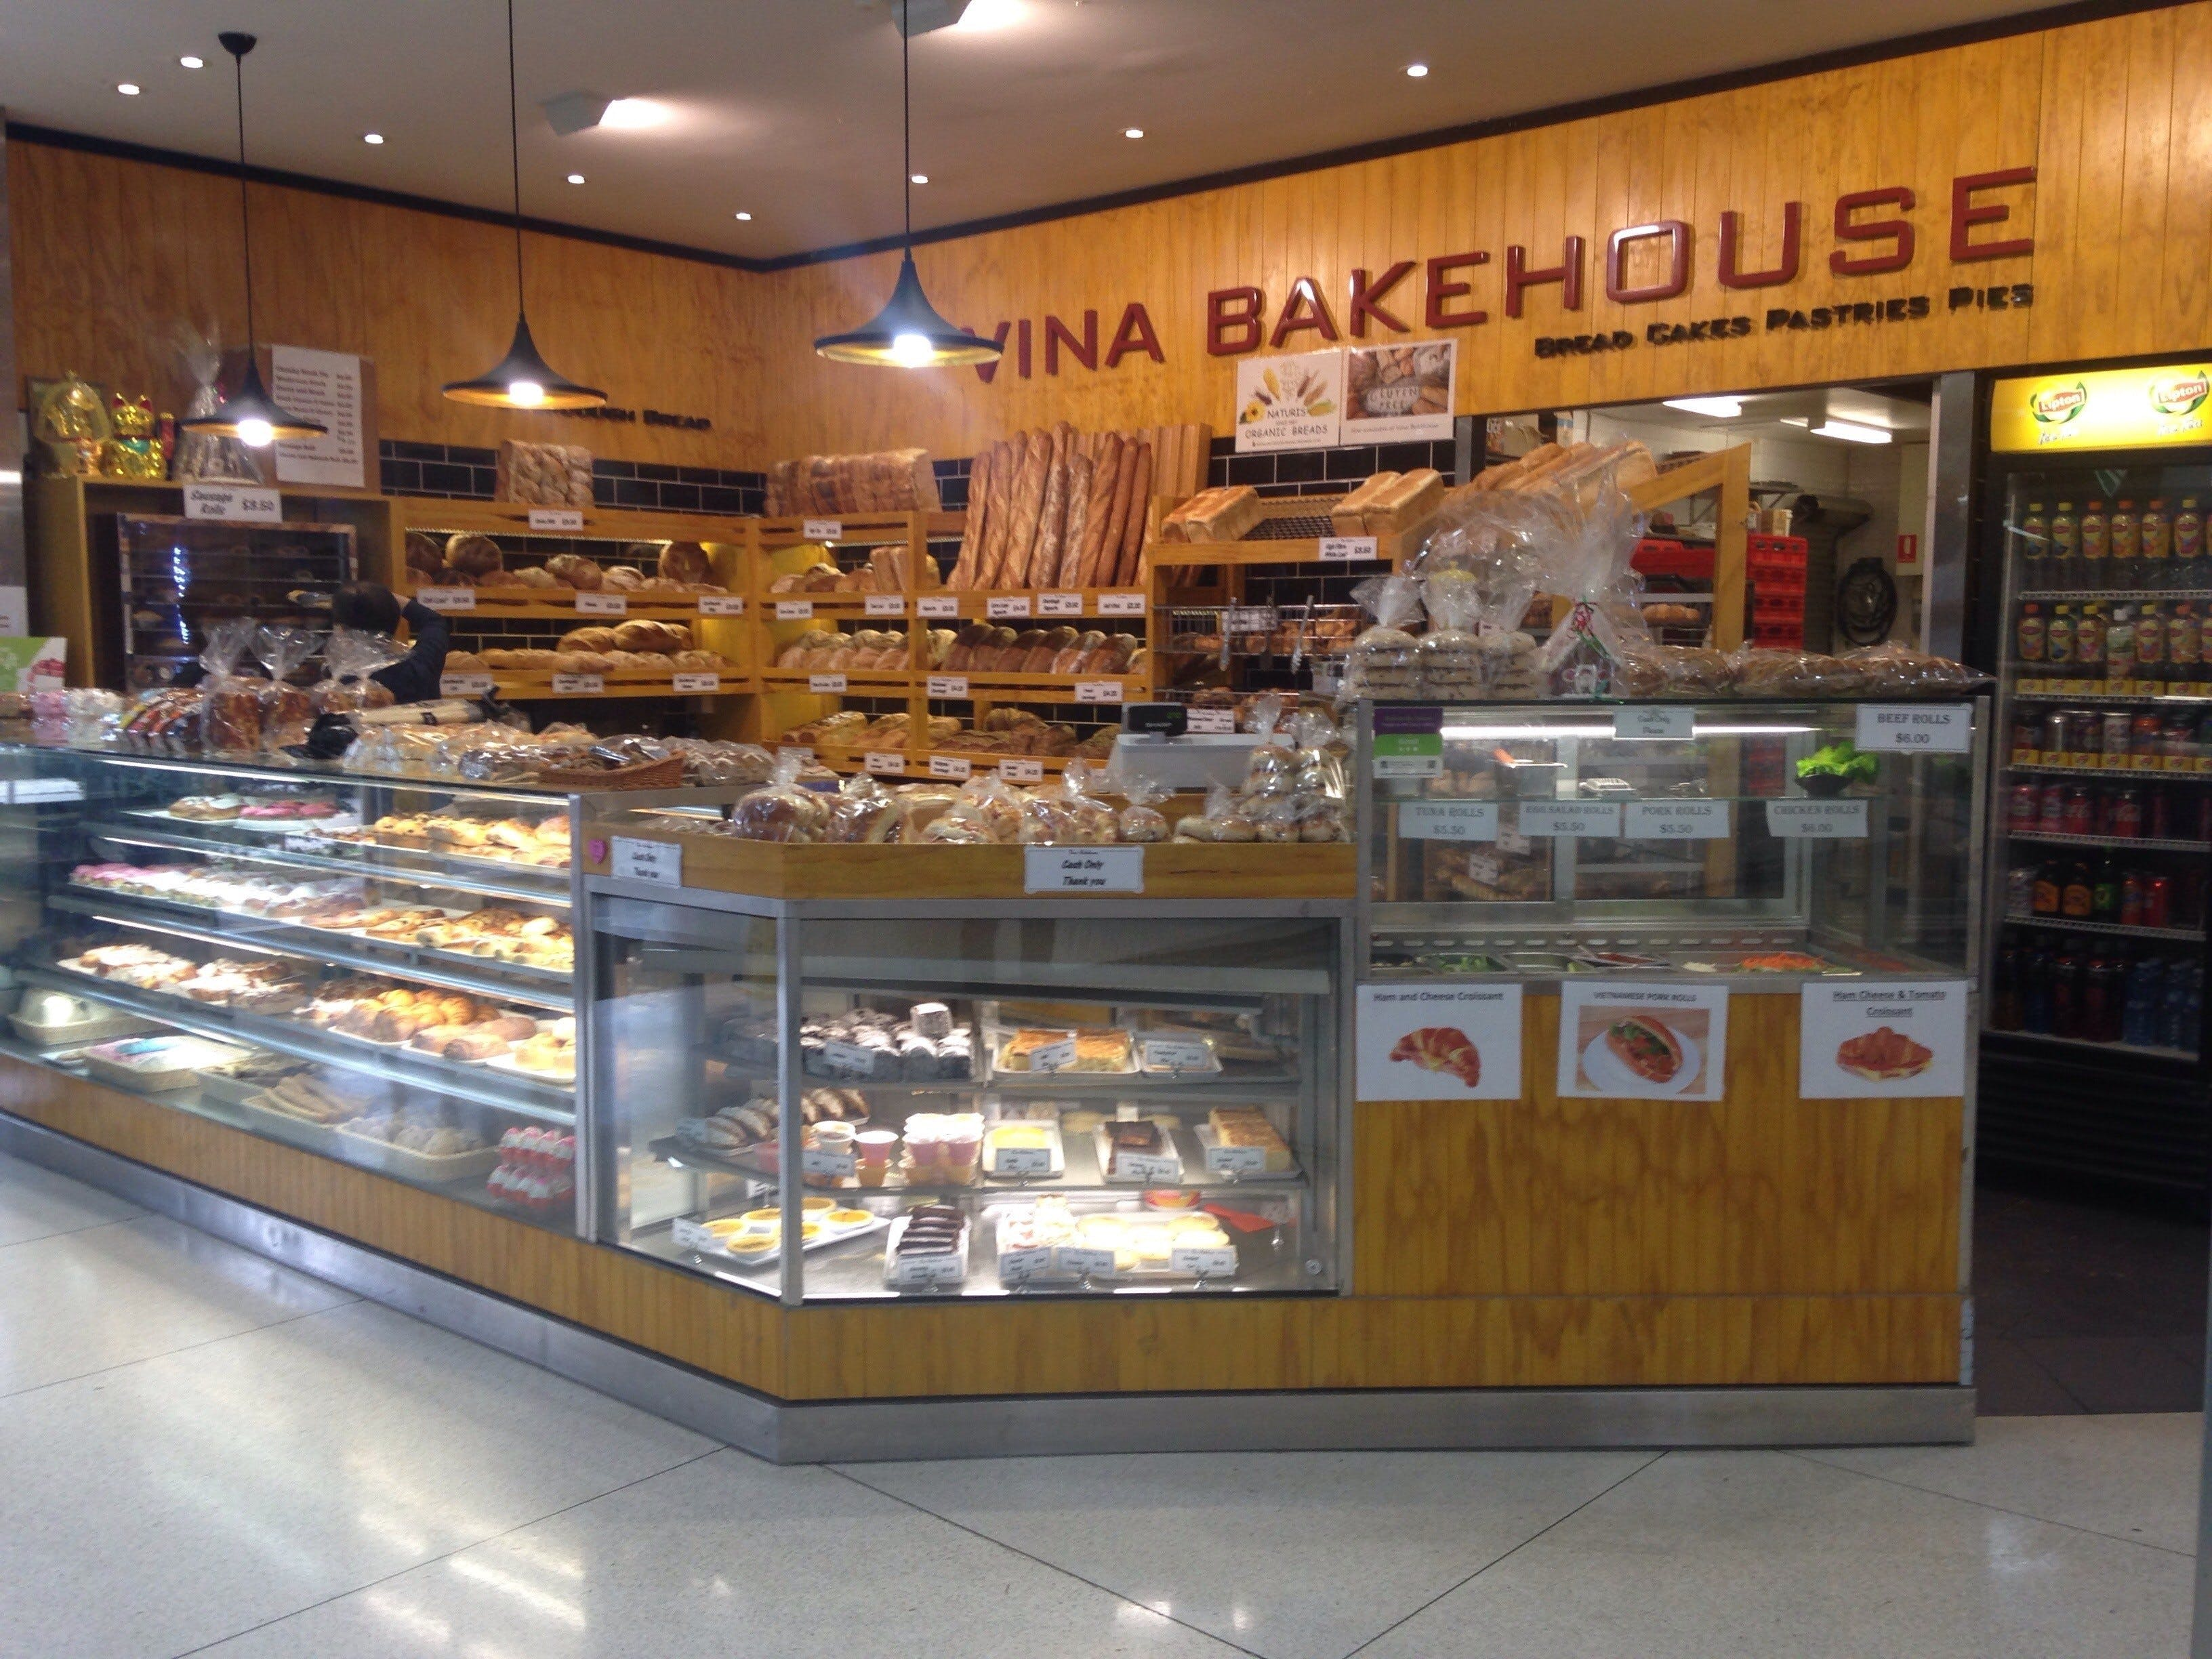 Vina bakehouse - Frenchs Forest - Sydney Tourism